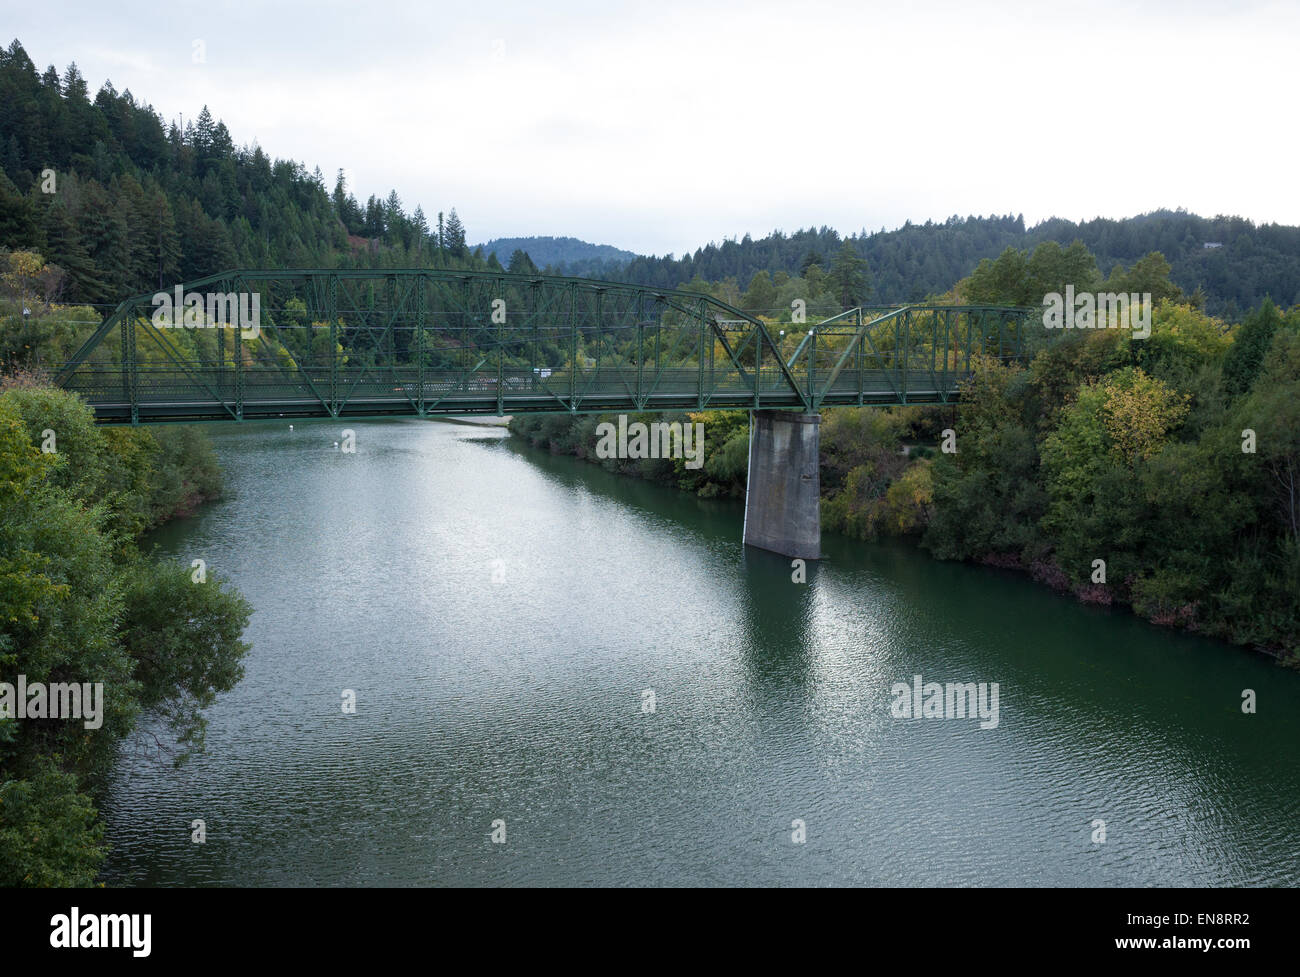 A Pedestrian Bridge across the Russian River in Guernville California. - Stock Image